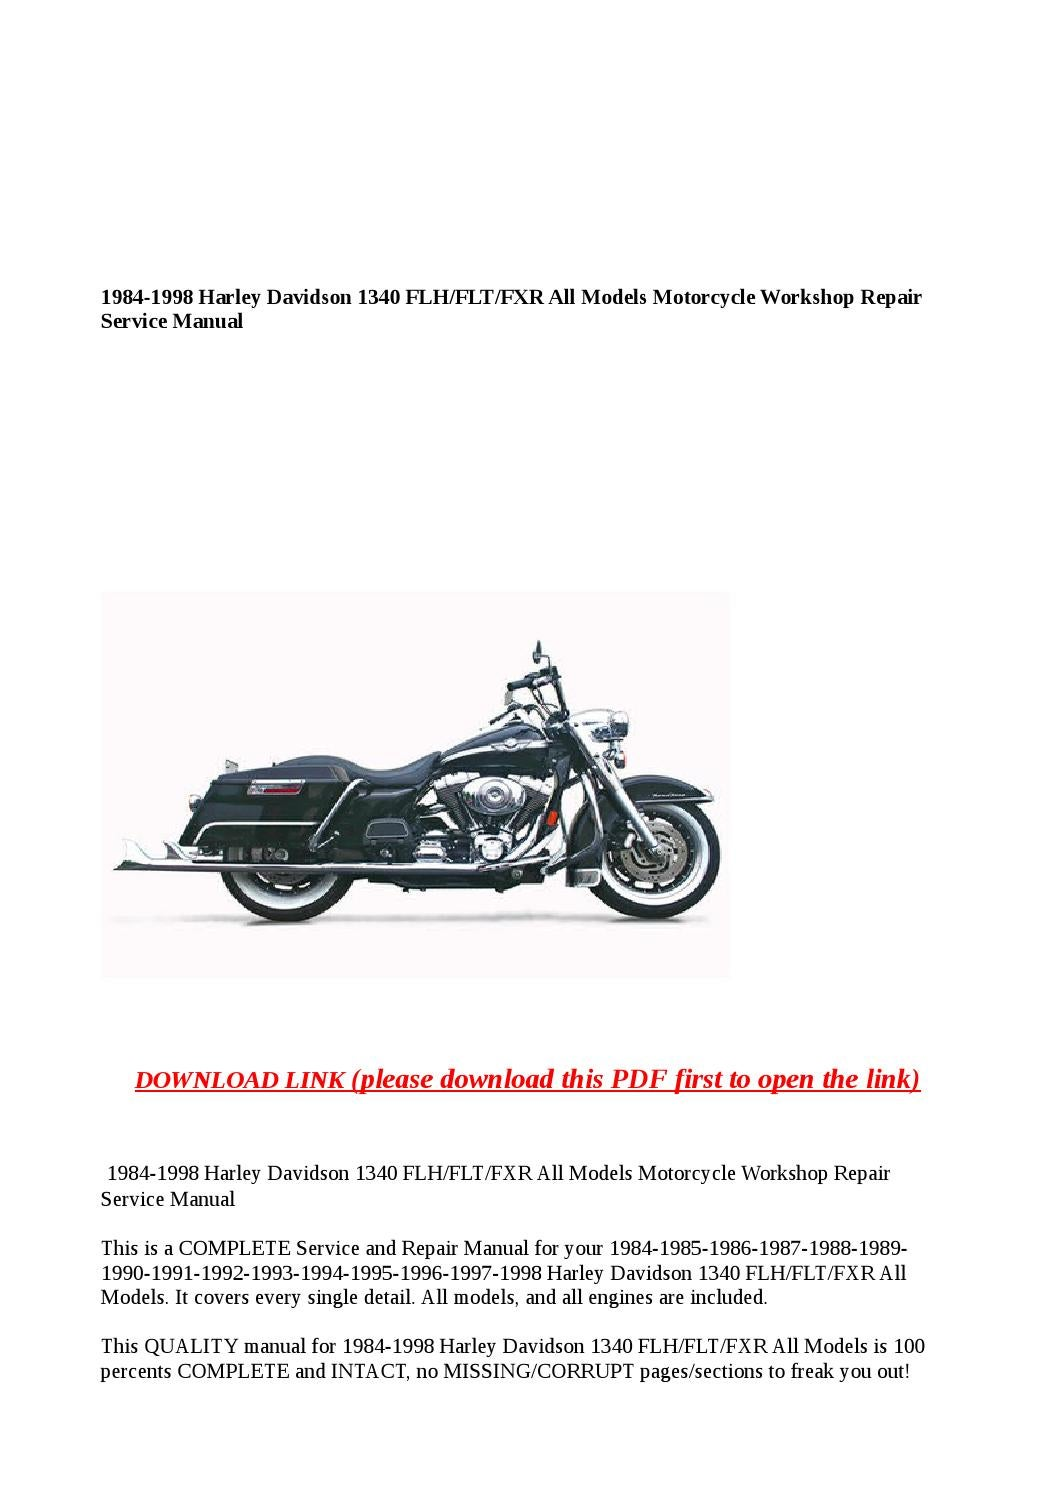 1987 flht wiring diagram wiring diagrams schematics rh o d l co Harley Ignition Switch Wiring Diagram Harley-Davidson Wiring Diagram Manual